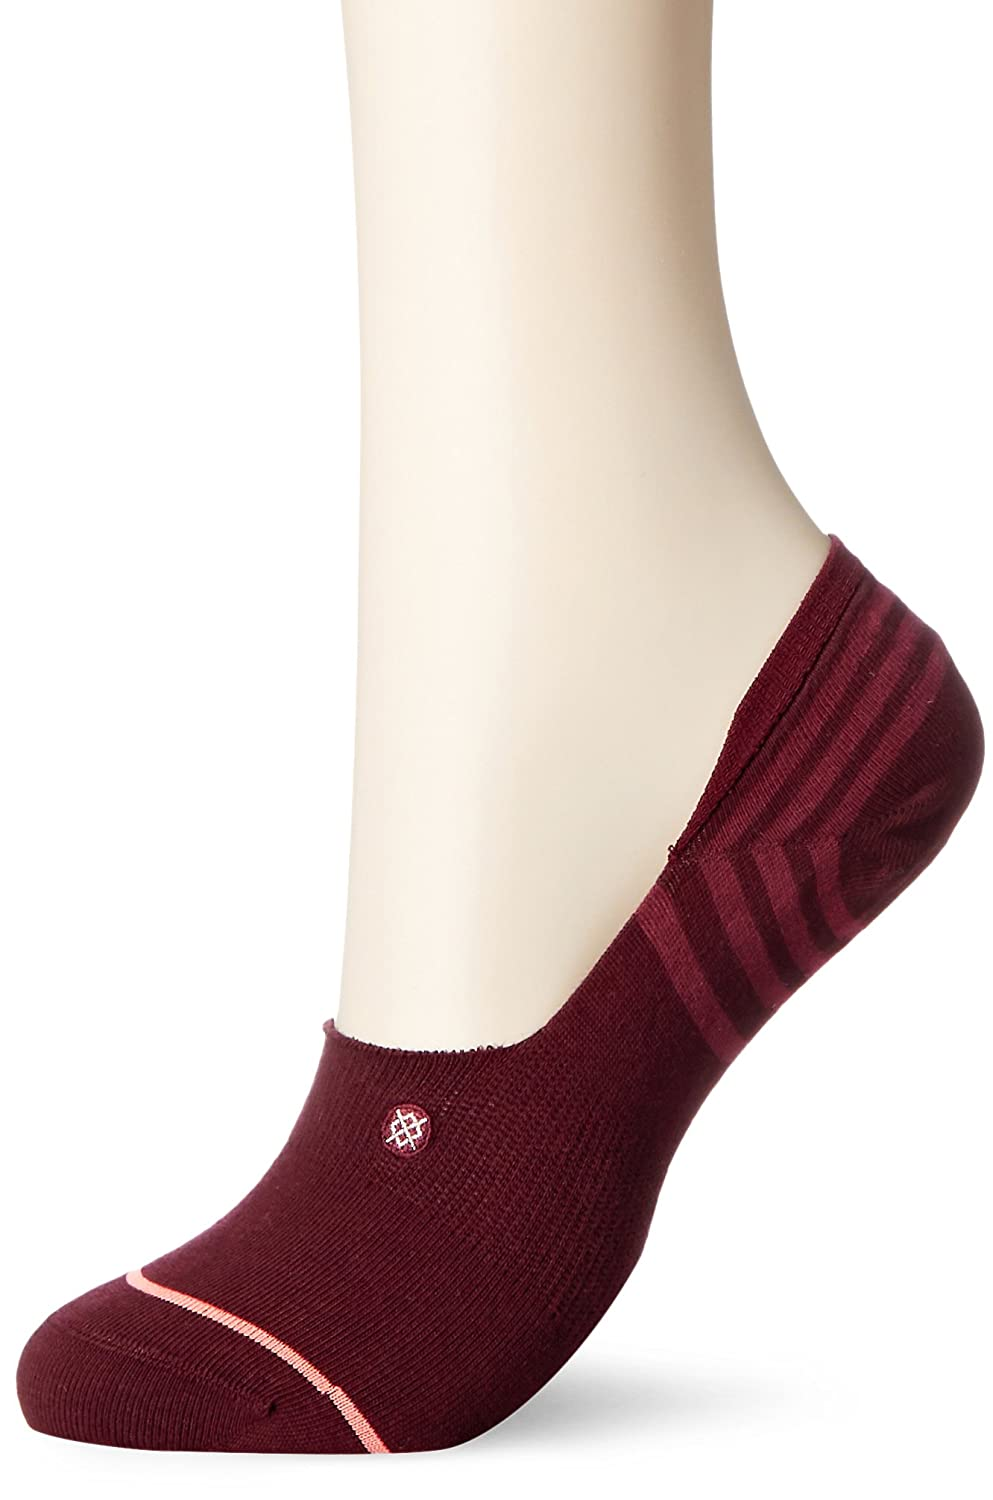 Stance Women's Uncommon Super Invisible Sock Stance Women's Socks W115A17UNC